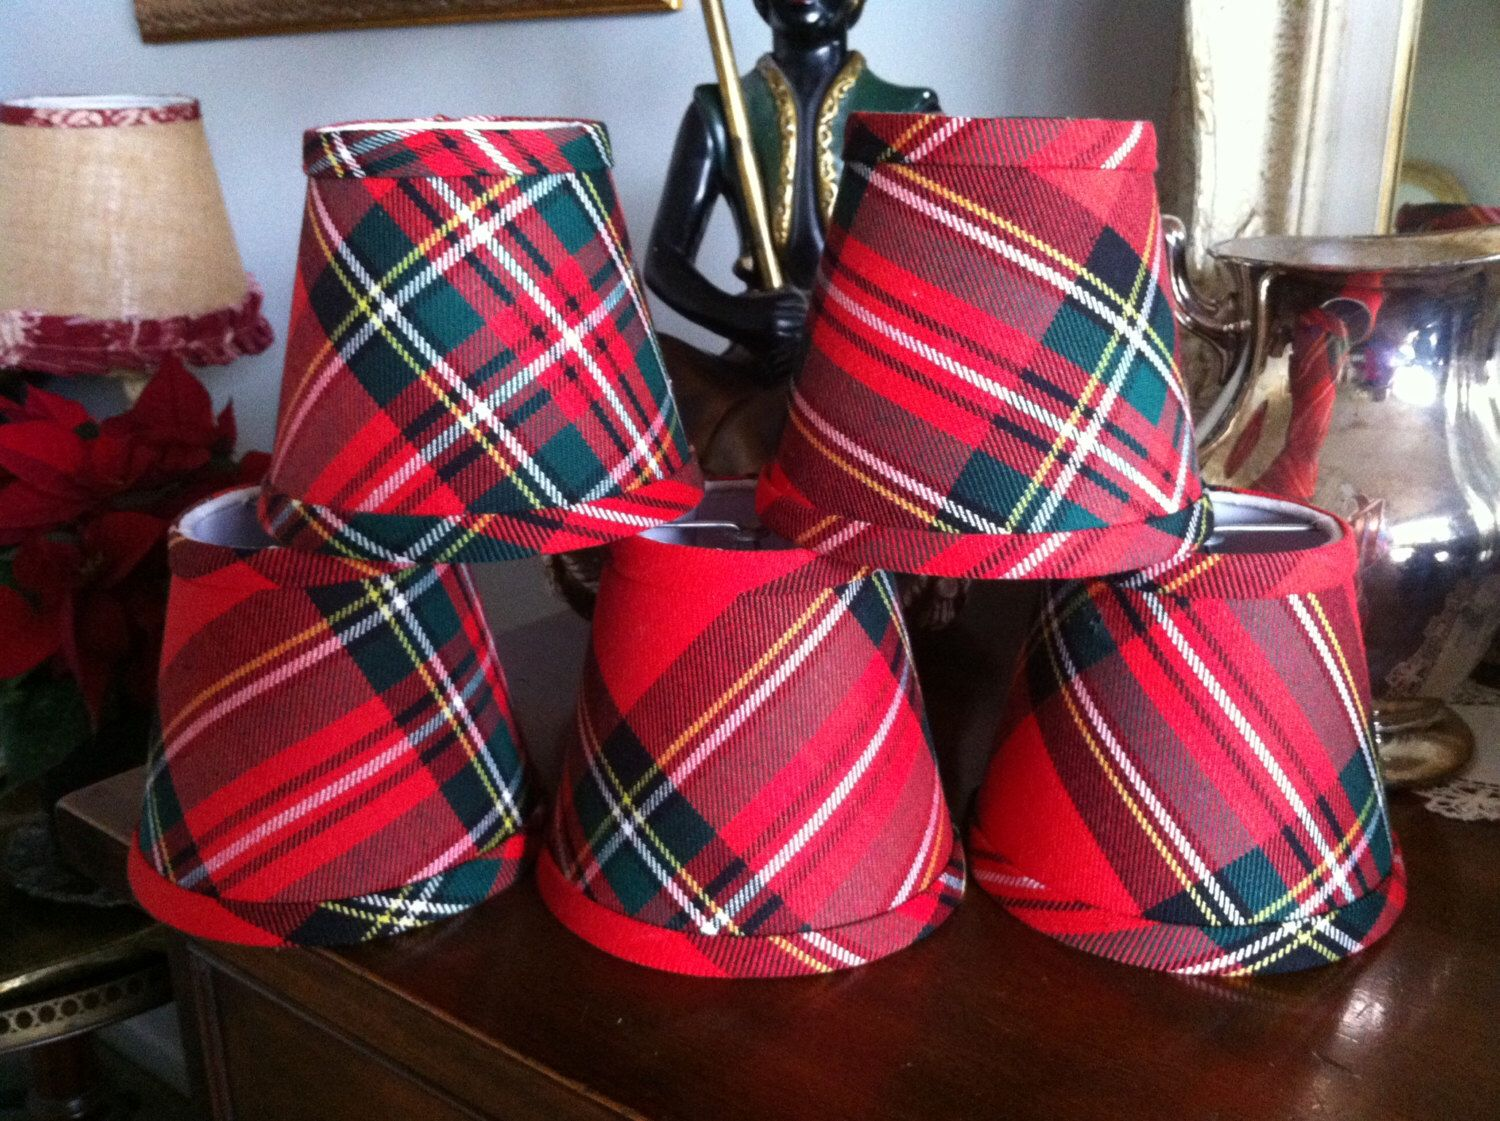 Red tartan chandelier lampshade plaid shade tartan chandelier shades red tartan chandelier lampshade plaid shade tartan chandelier shades by simplyshades on etsy httpsetsylisting258477738red tartan chan arubaitofo Choice Image